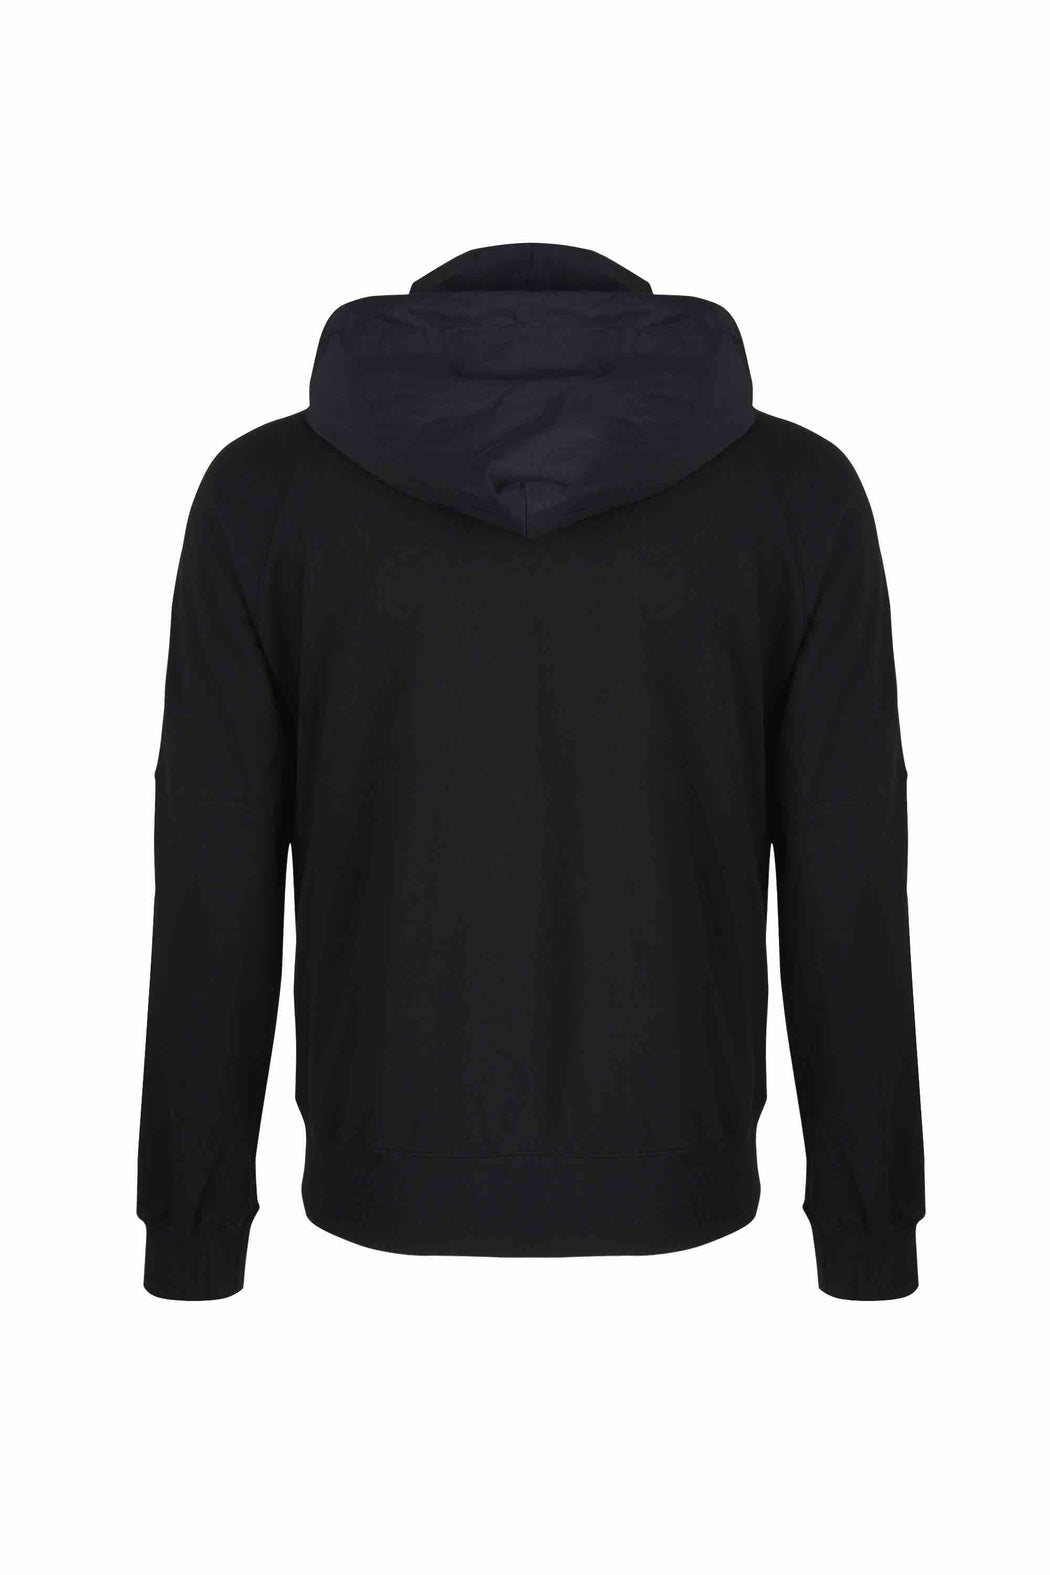 Back view of Men Nylon Hoodie Zip-Up, made with Organic Cotton in Black